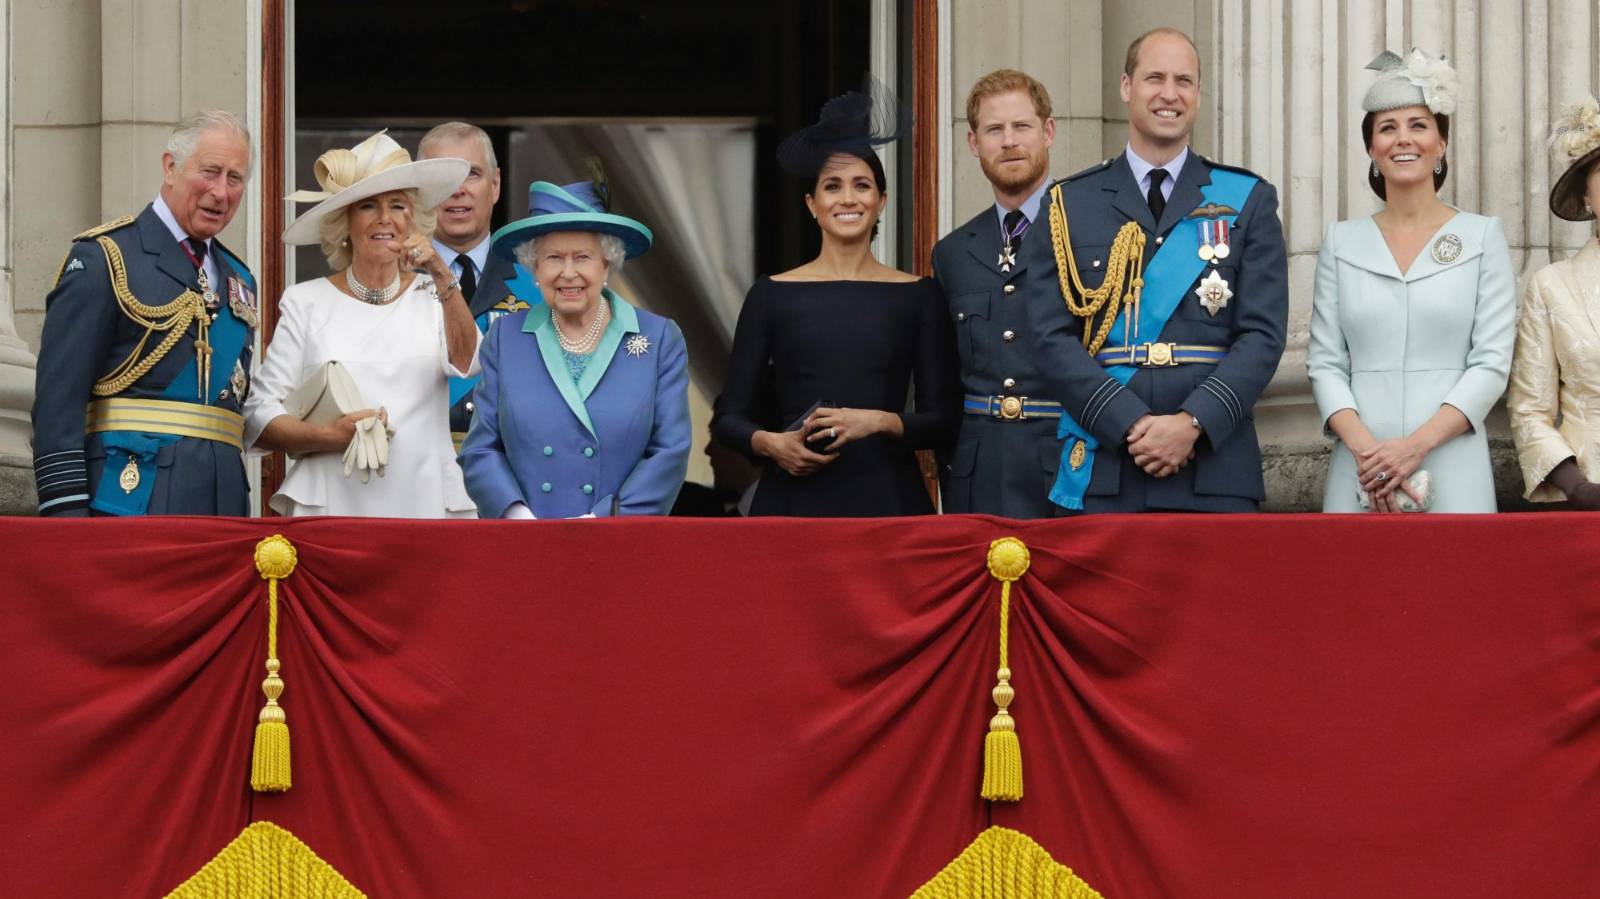 Royal summit to decide future of monarchy led by Prince Charles and Prince William